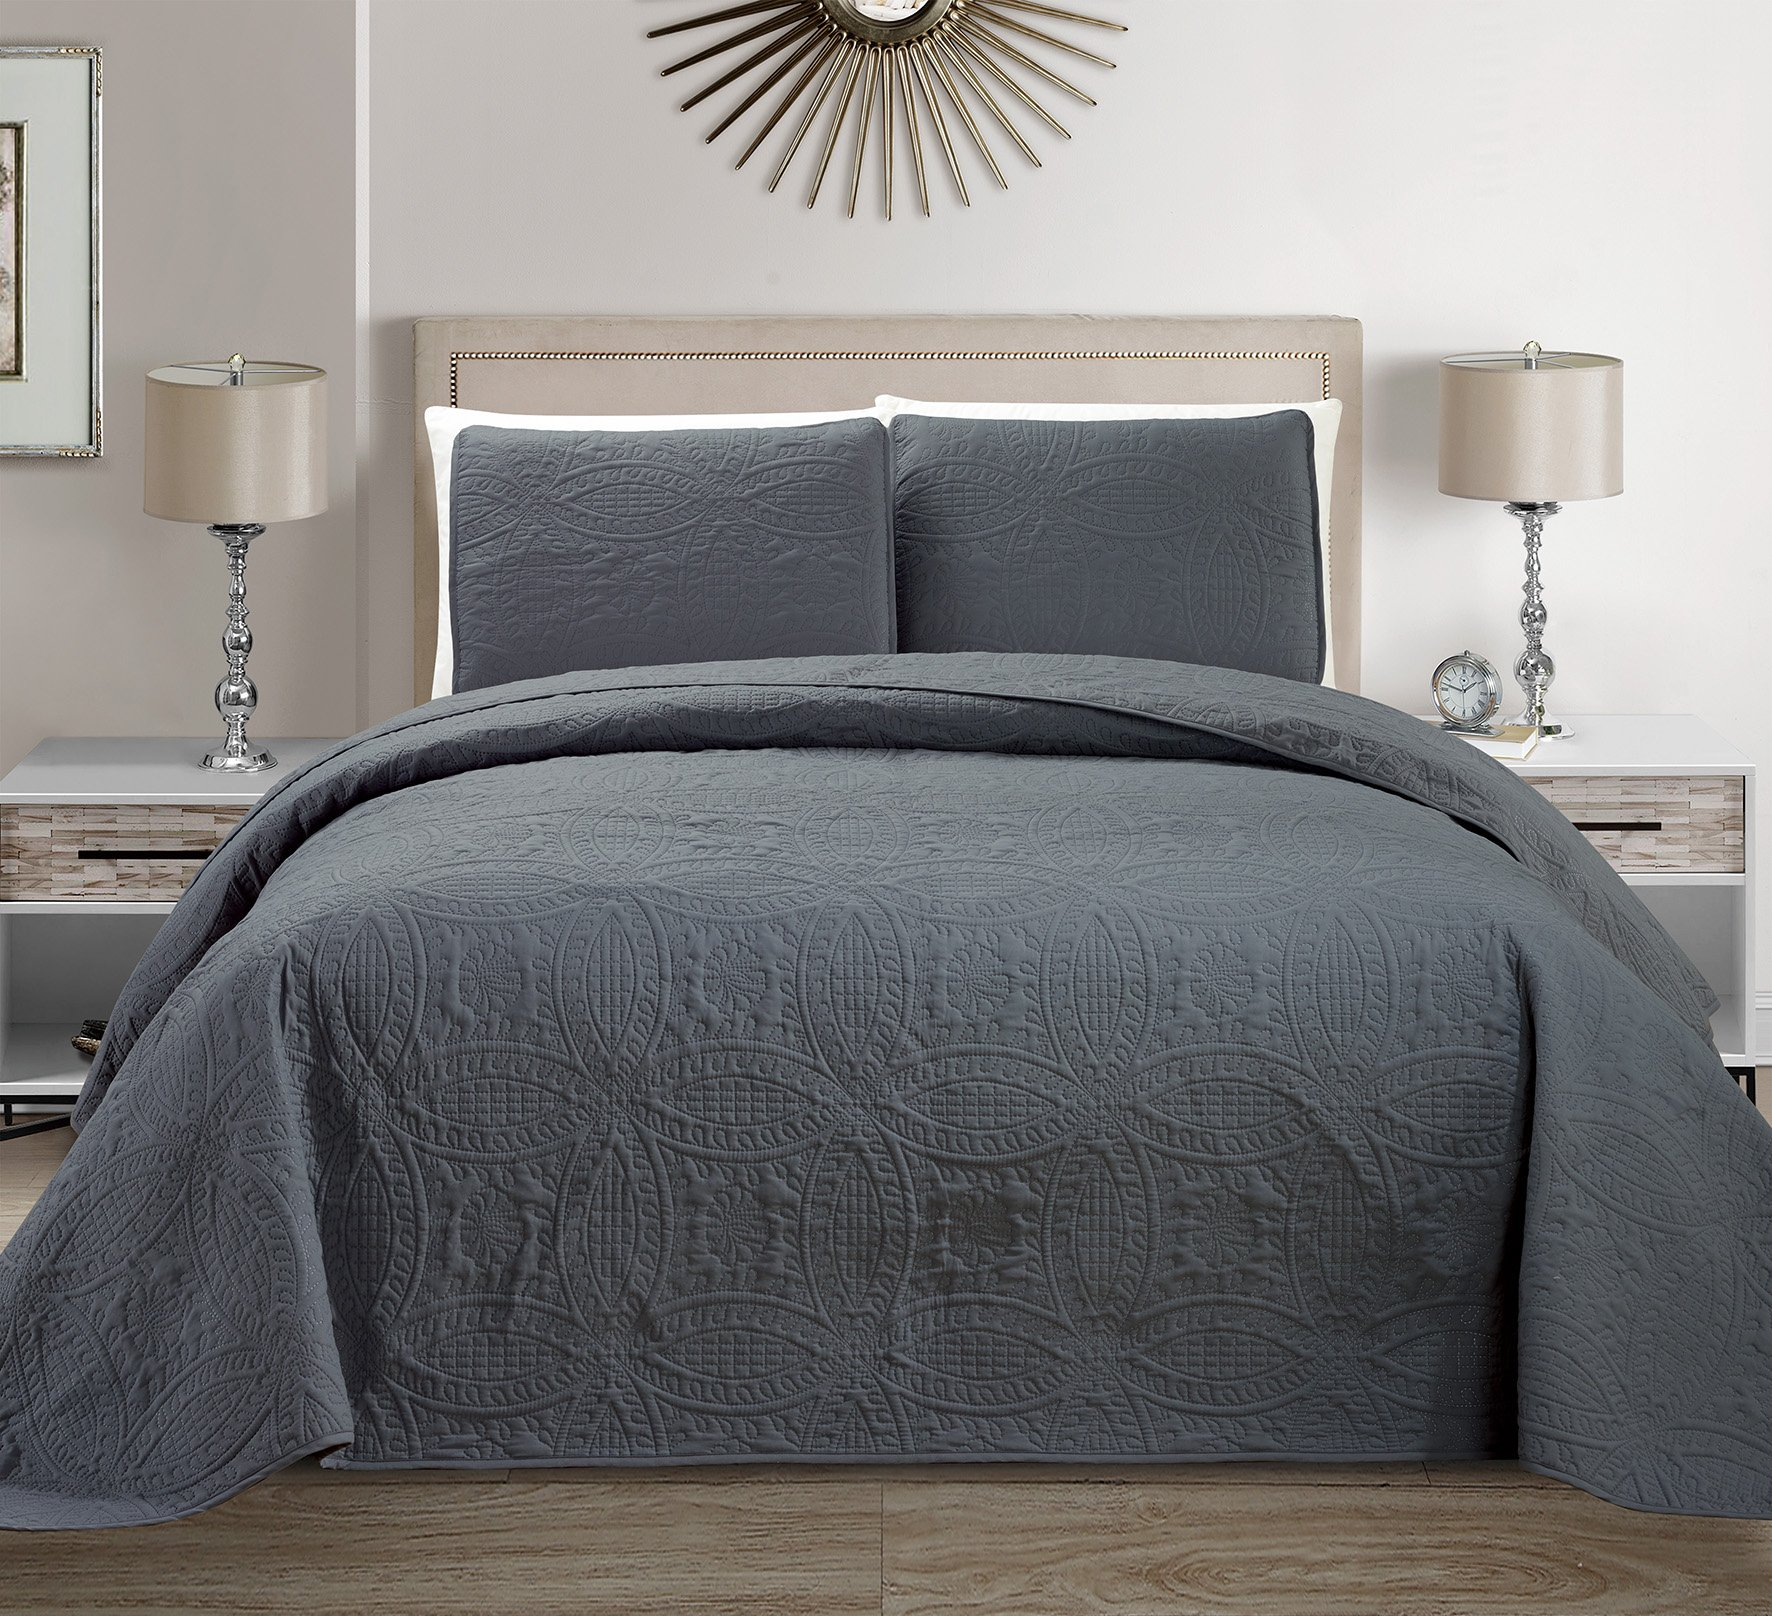 Mk Collection 3 pc Solid Embossed Bedspread Bed-cover Over size Dark Grey New King/California King Over size 118'' x 106''